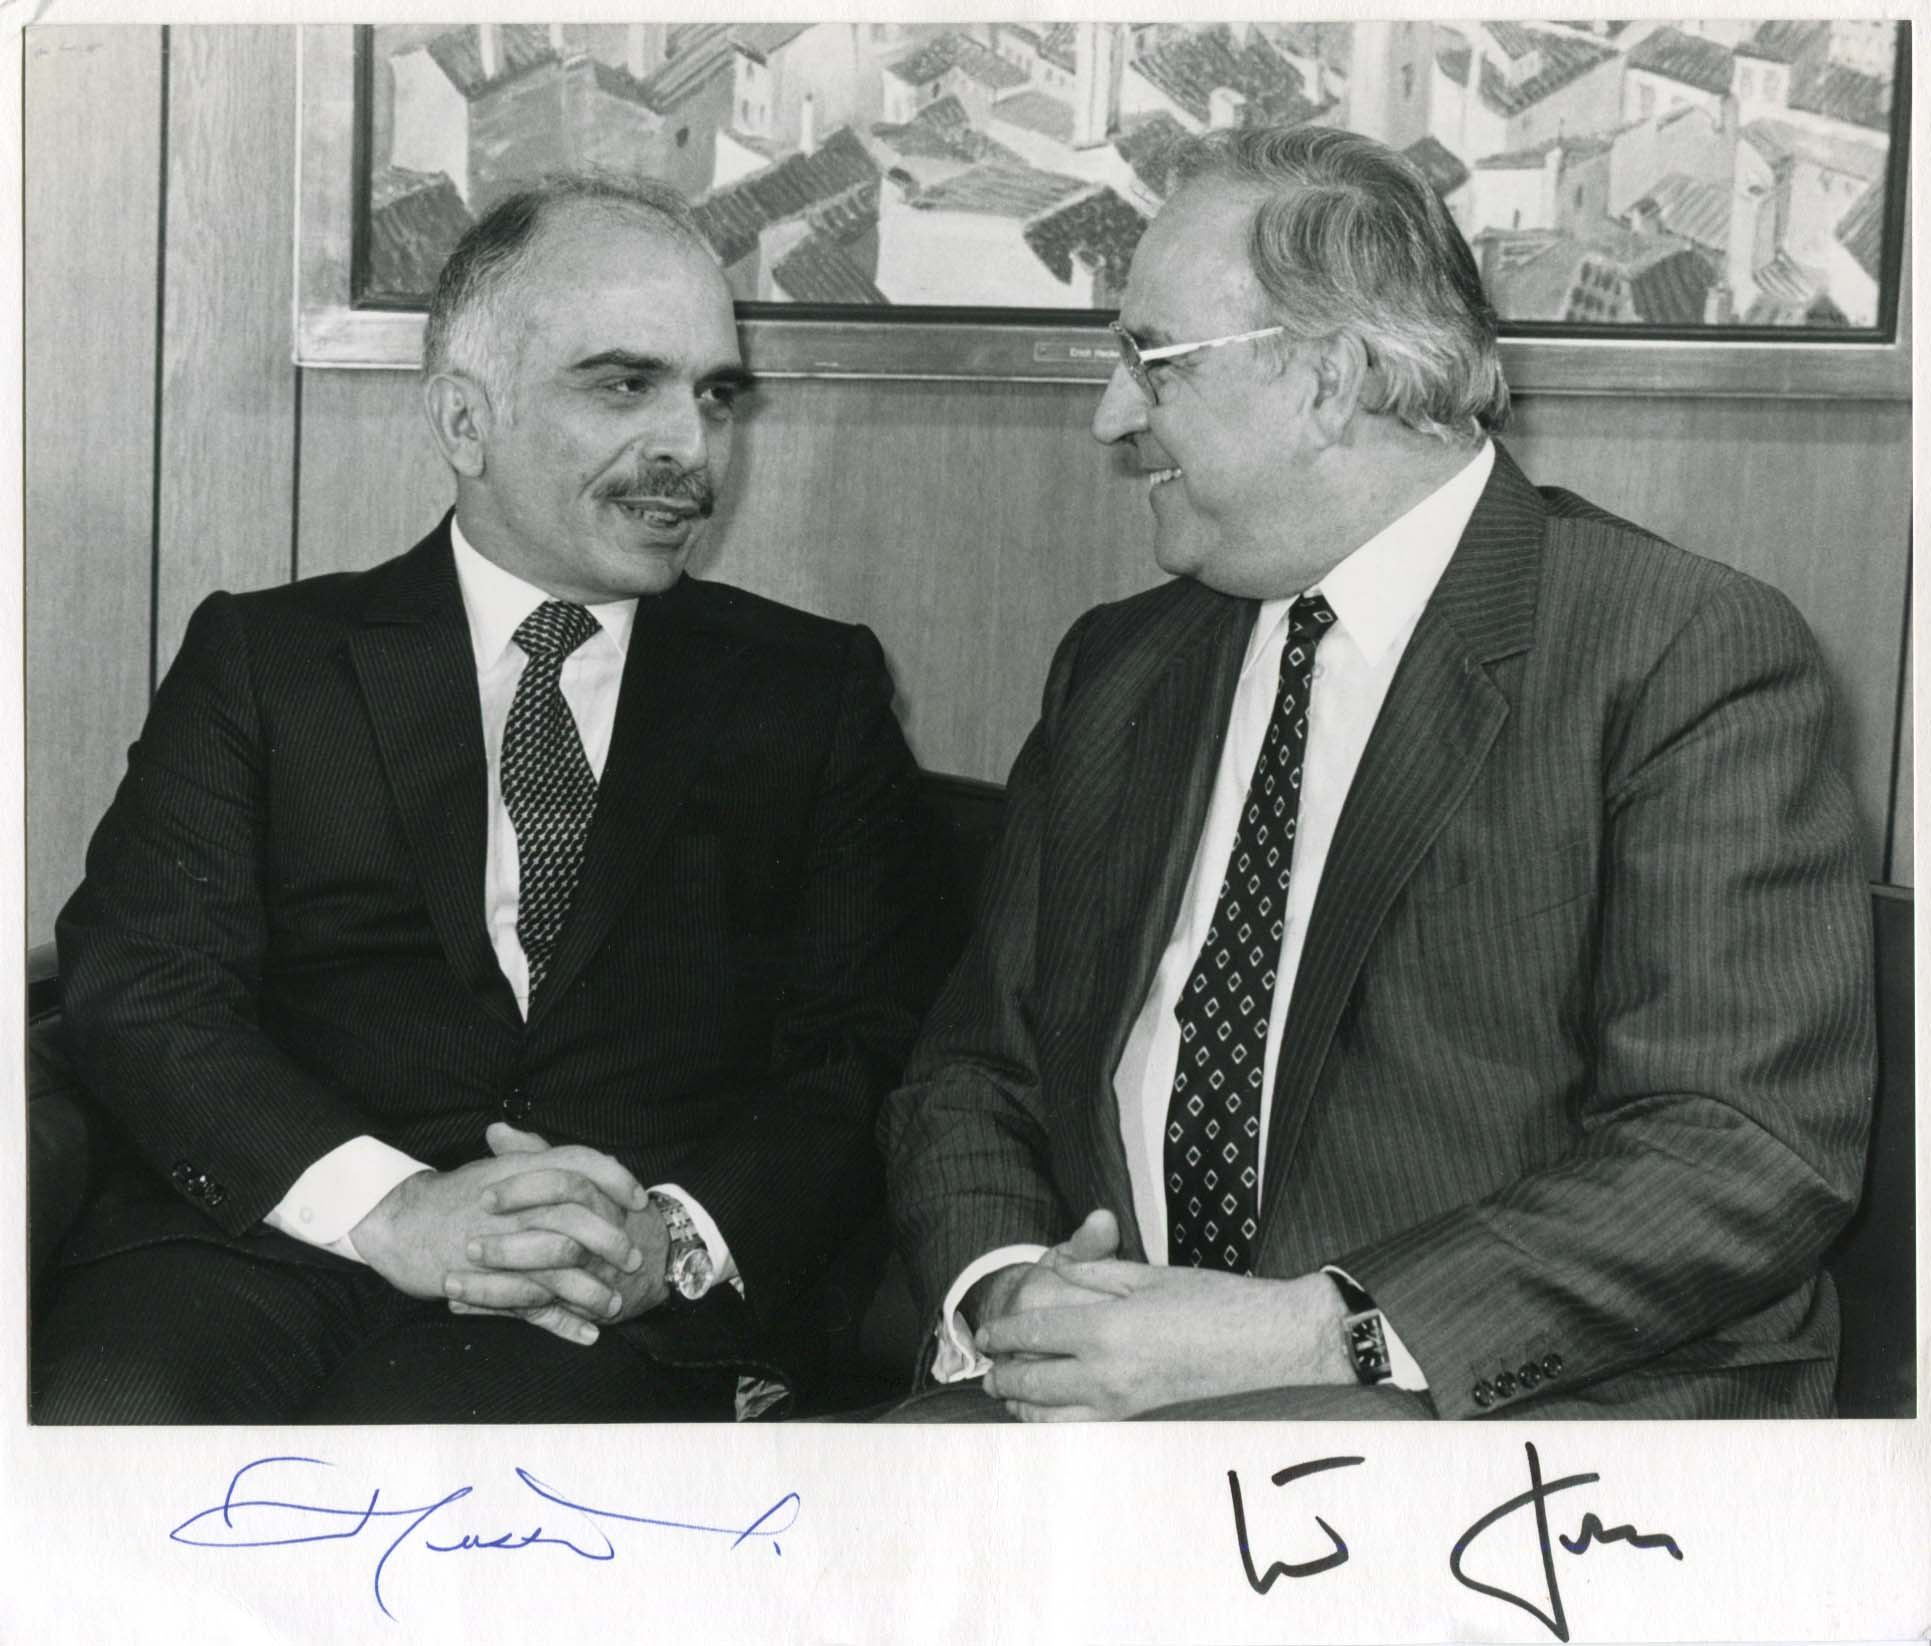 of Jordan, King Hussein & Kohl, Helmut - Autograph King Hussein & Helmut of Jordan & Kohl (King of Jordan & German conservative politician and states of Jordan, King Hussein & Kohl, Helmut Signed cardboard - with an affixed glossy press photograph, shows Hussein bin Talal King of Jordan and Helmut Kohl during a meeting, 9,75 x 8,25 inch, signed by King Hussein of Jordan in blue ballpoint ink and by Helmut Kohl in black felt tip, in very fine condition.